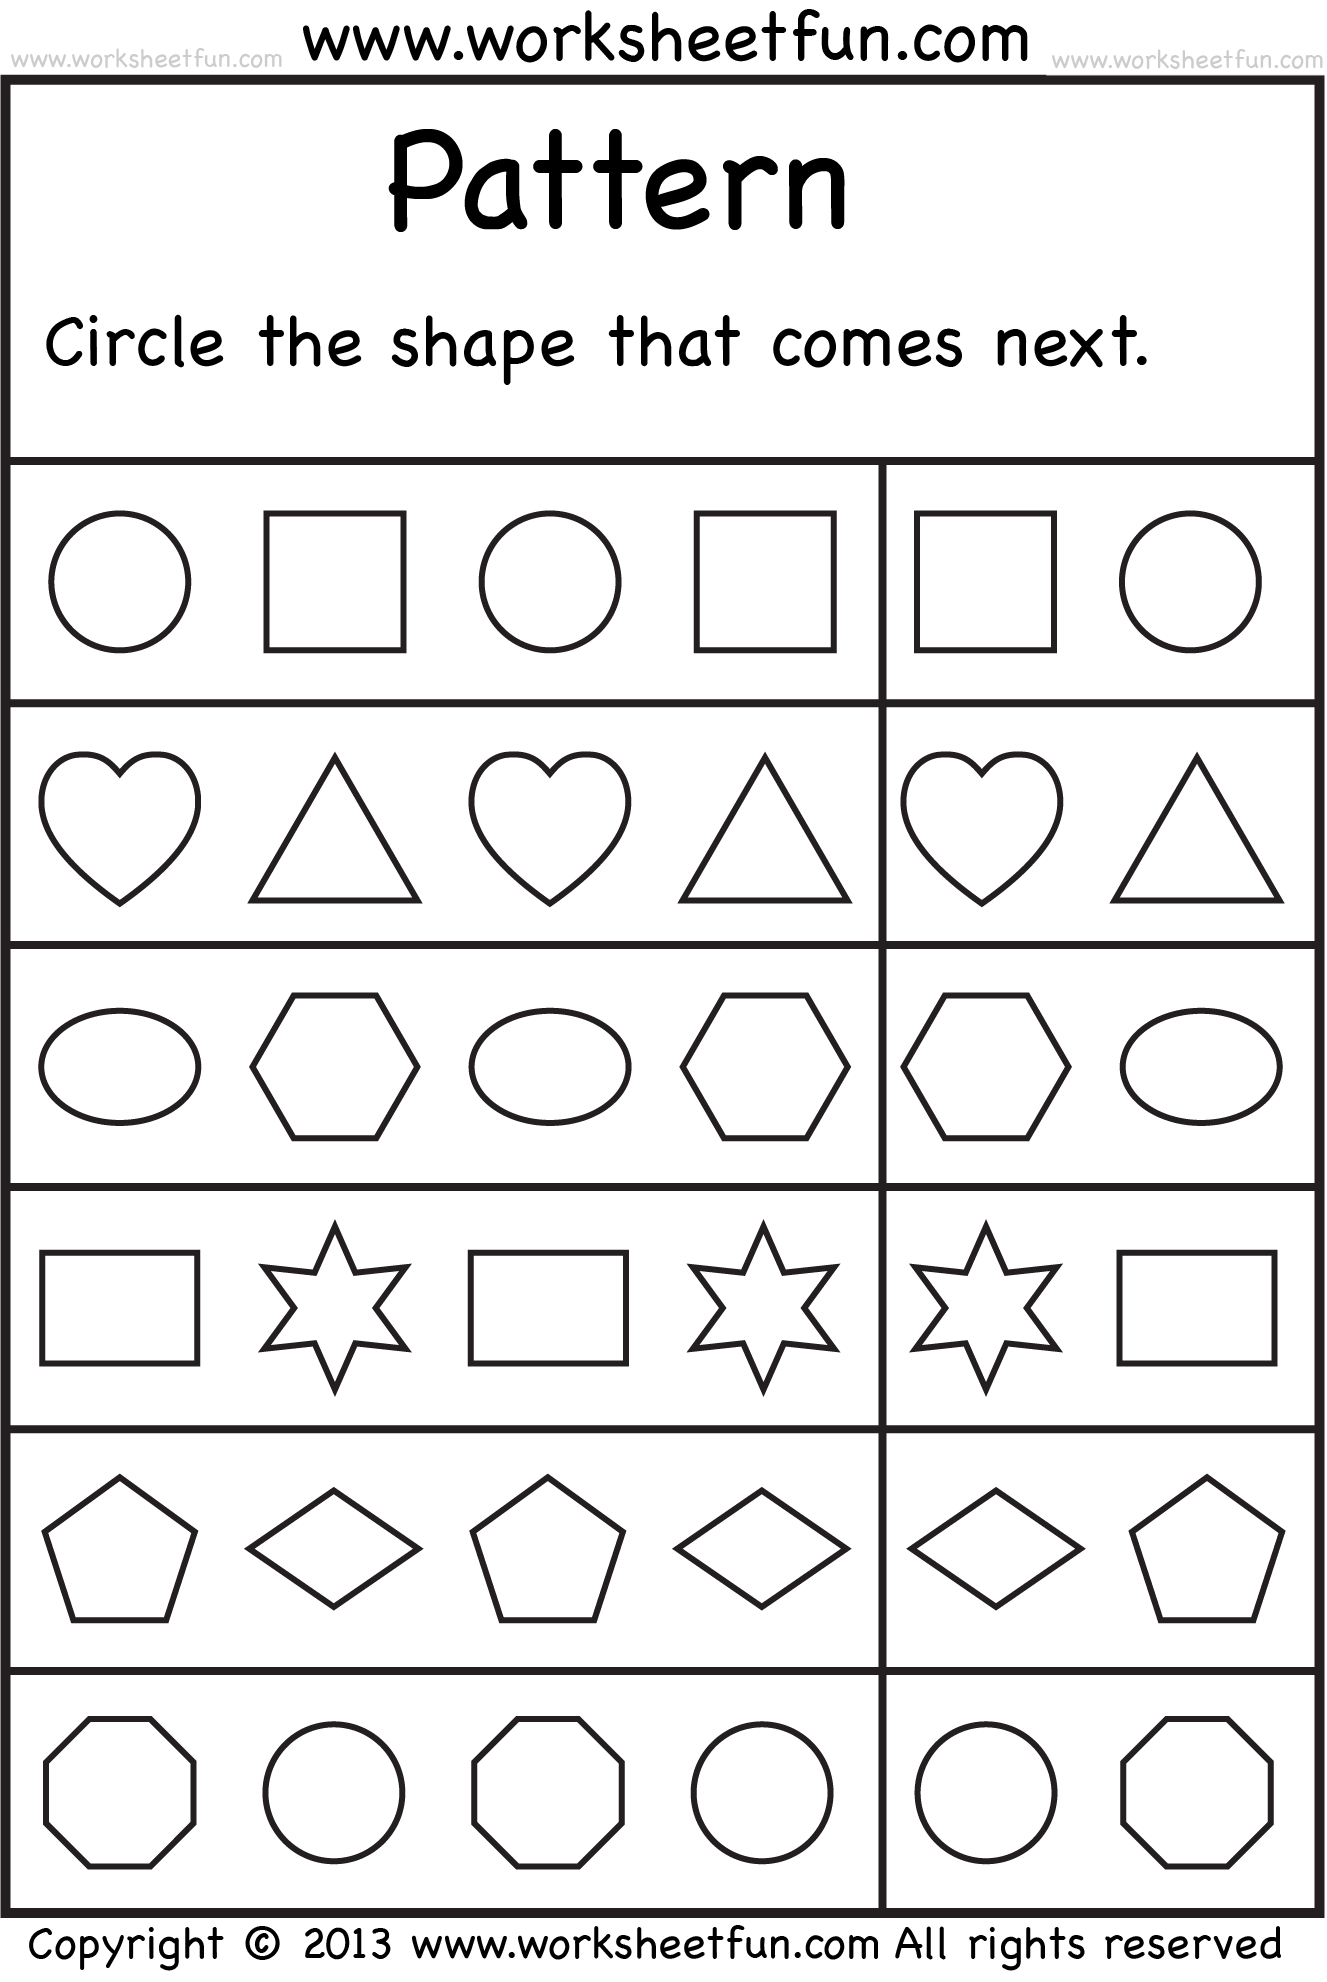 Proatmealus  Outstanding  Images About School Worksheets On Pinterest  Number Words  With Fetching  Images About School Worksheets On Pinterest  Number Words Alphabet Worksheets And Free Printable Kindergarten Worksheets With Captivating Letters For Kindergarten Worksheets Also Ks Maths Worksheet In Addition Phonics Worksheets For Grade  And Reading Free Worksheets As Well As Math Worksheets Kindergarten Addition And Subtraction Additionally Demonstrative Pronouns Worksheets For Kids From Pinterestcom With Proatmealus  Fetching  Images About School Worksheets On Pinterest  Number Words  With Captivating  Images About School Worksheets On Pinterest  Number Words Alphabet Worksheets And Free Printable Kindergarten Worksheets And Outstanding Letters For Kindergarten Worksheets Also Ks Maths Worksheet In Addition Phonics Worksheets For Grade  From Pinterestcom